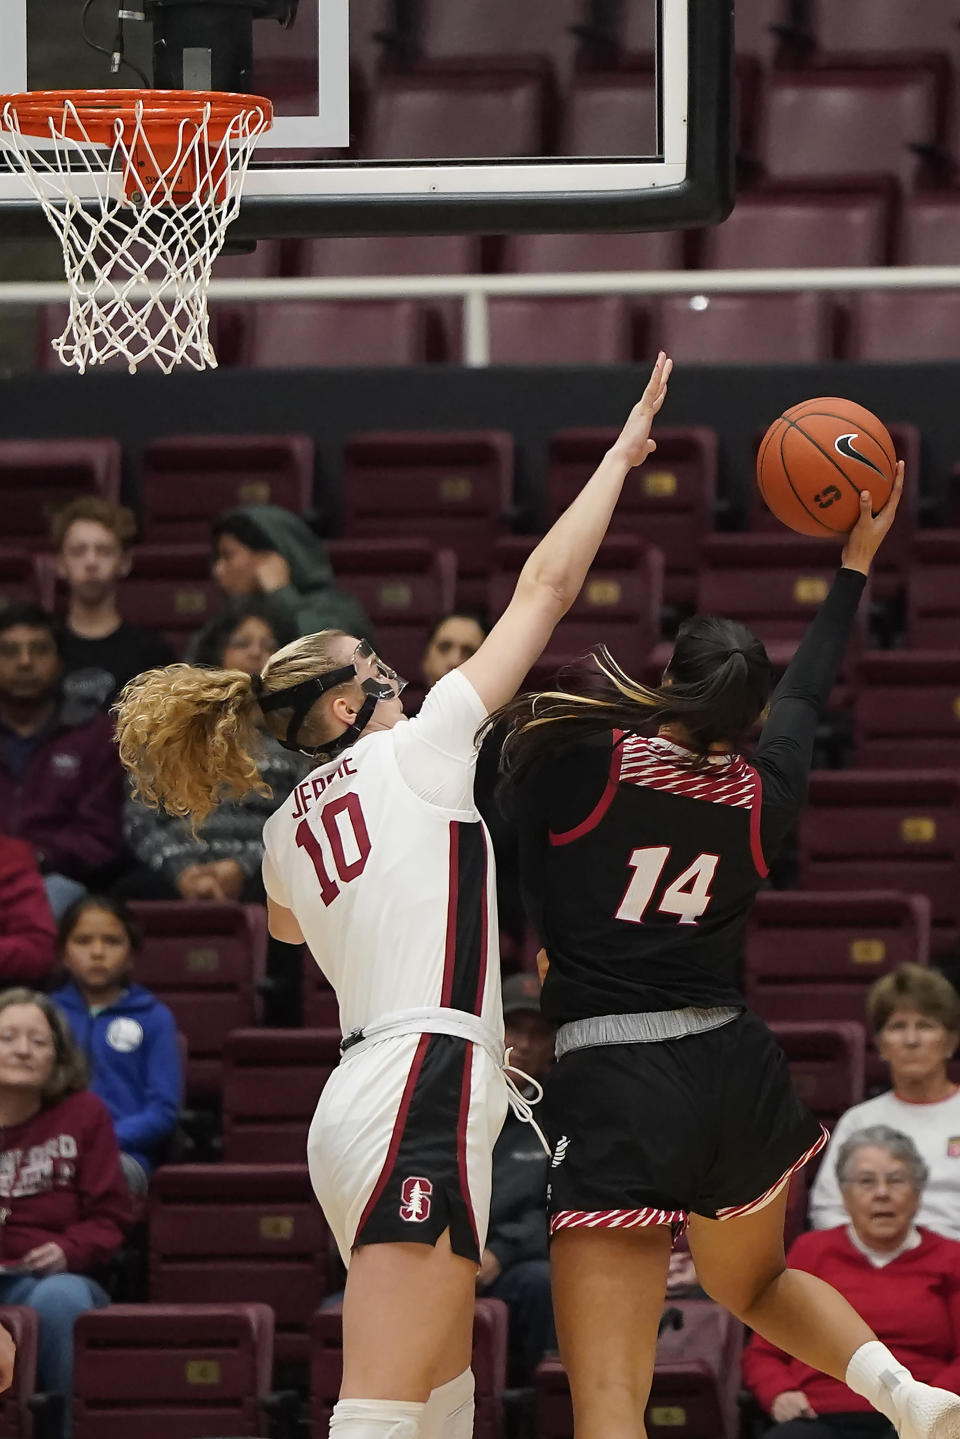 Stanford forward Alyssa Jerome (10) blocks a shot by Eastern Washington center Bella Cravens (14) during the first half of an NCAA college basketball game Tuesday, Nov. 5, 2019, in Stanford, Calif. (AP Photo/Tony Avelar)